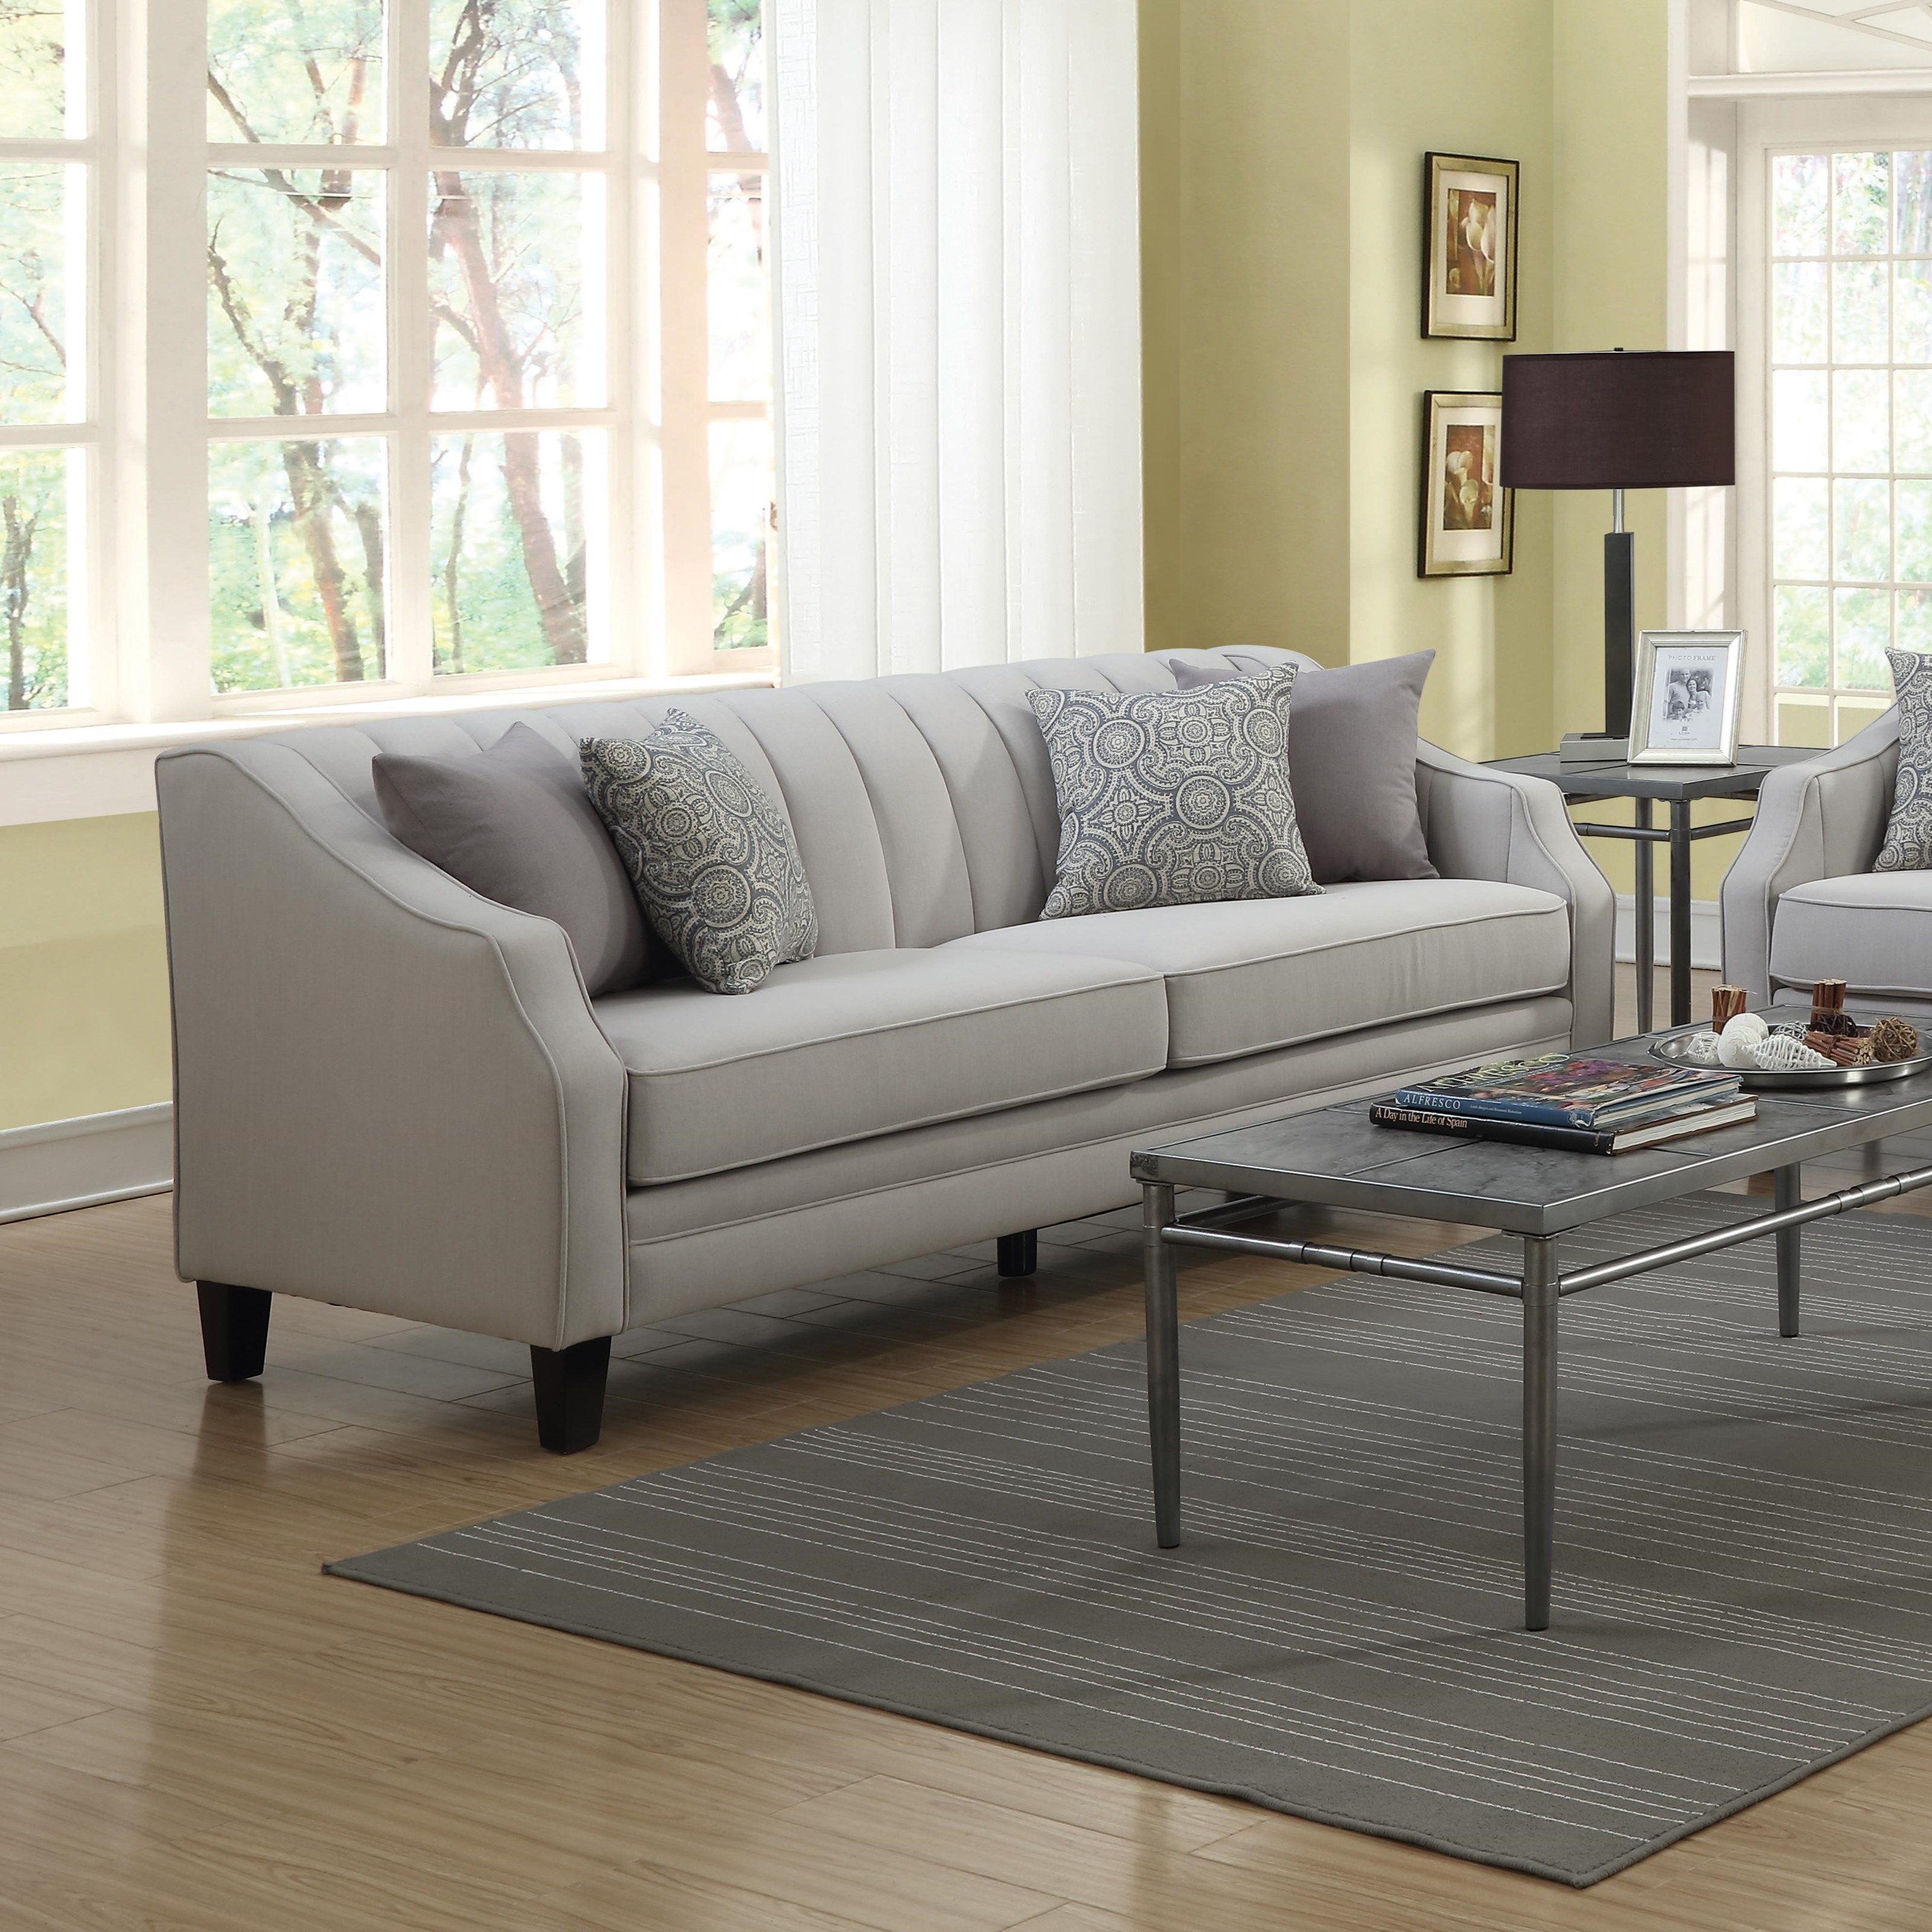 Loxley Sofa with Channeled Back and Track Arms  Quality